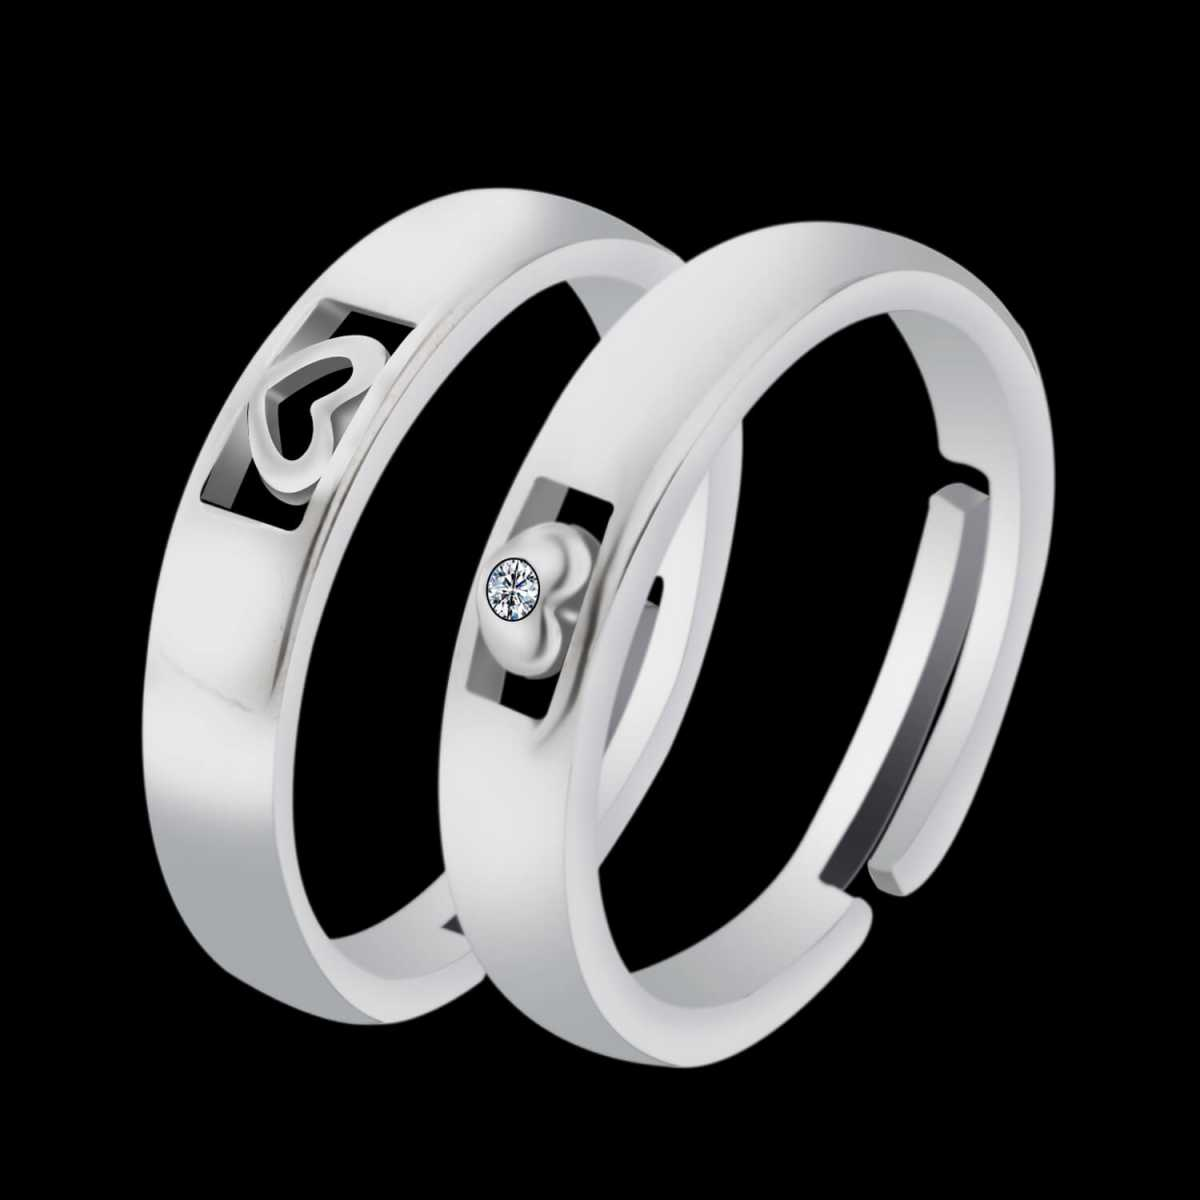 Silver Shine Silver Plated Solitaire His and Her Heart shape matching  Adjustable Couple ring  for Men and Women,Couple ring  Girls and Boys-2 pieces